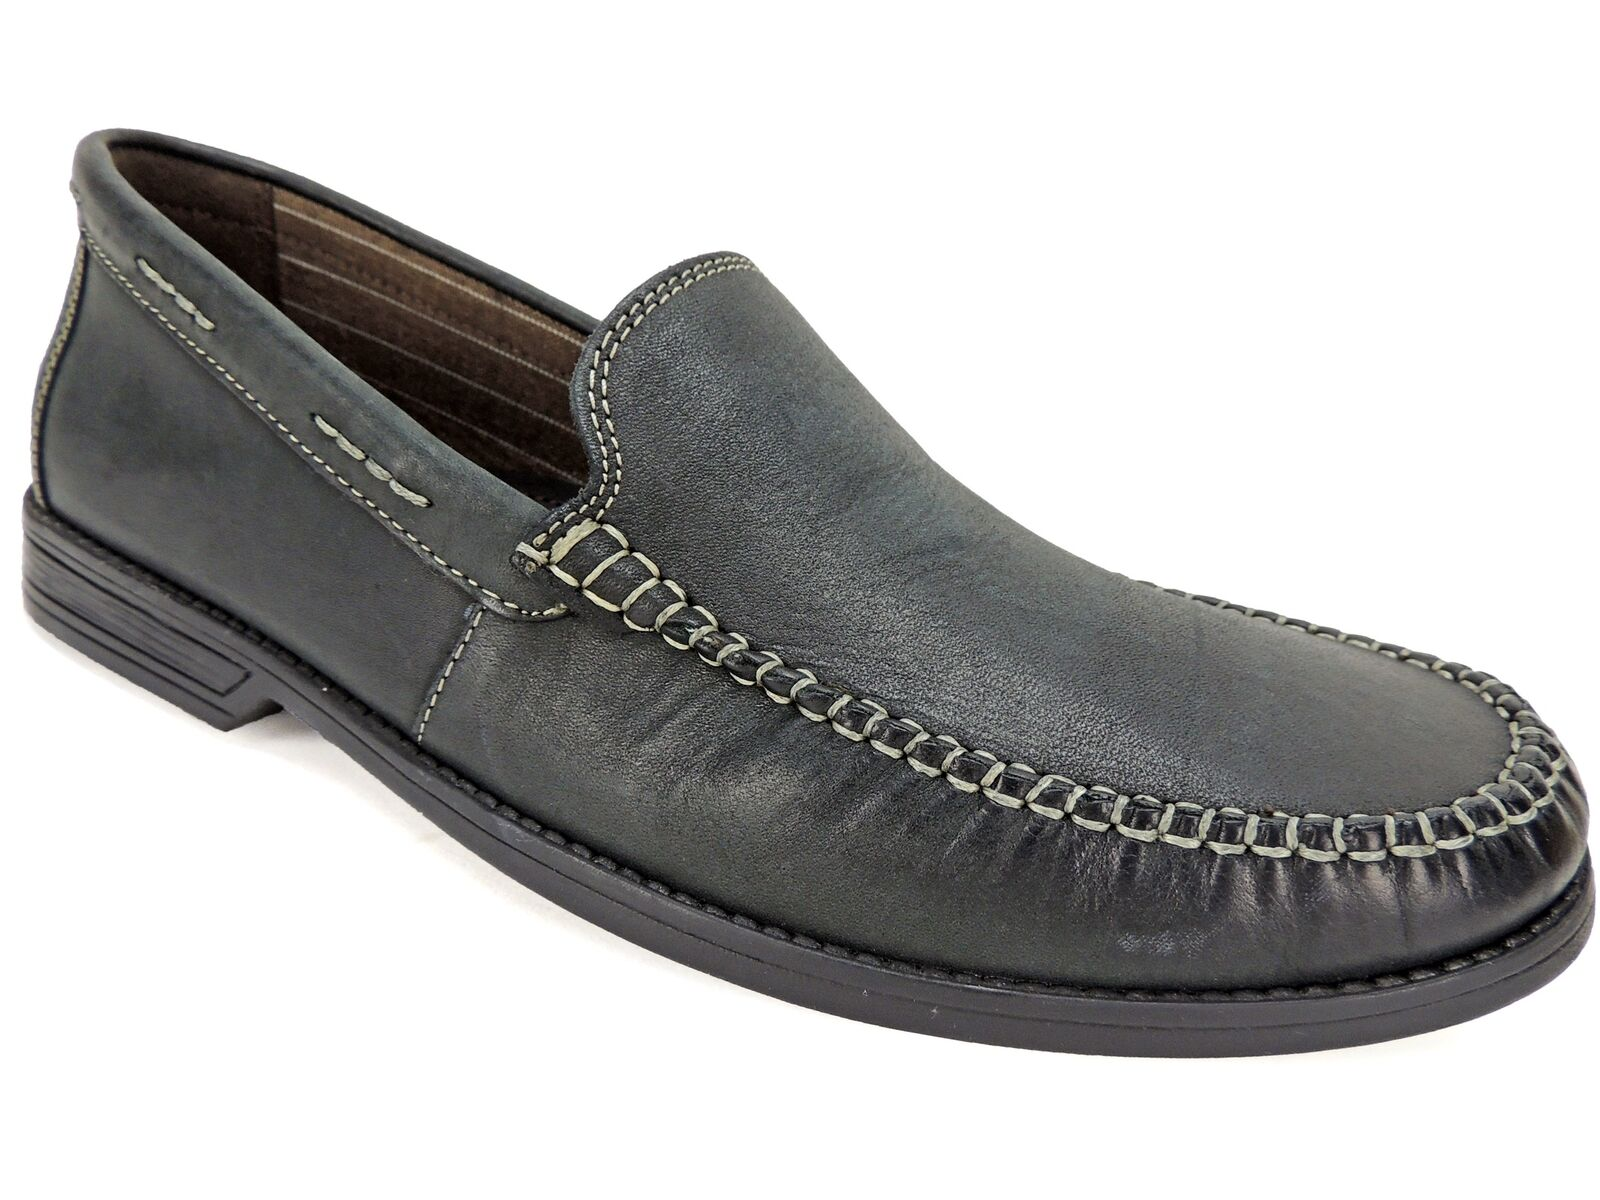 Bostonian Men's Warren Twin Slip-On Loafers Black Leather Size 11 M